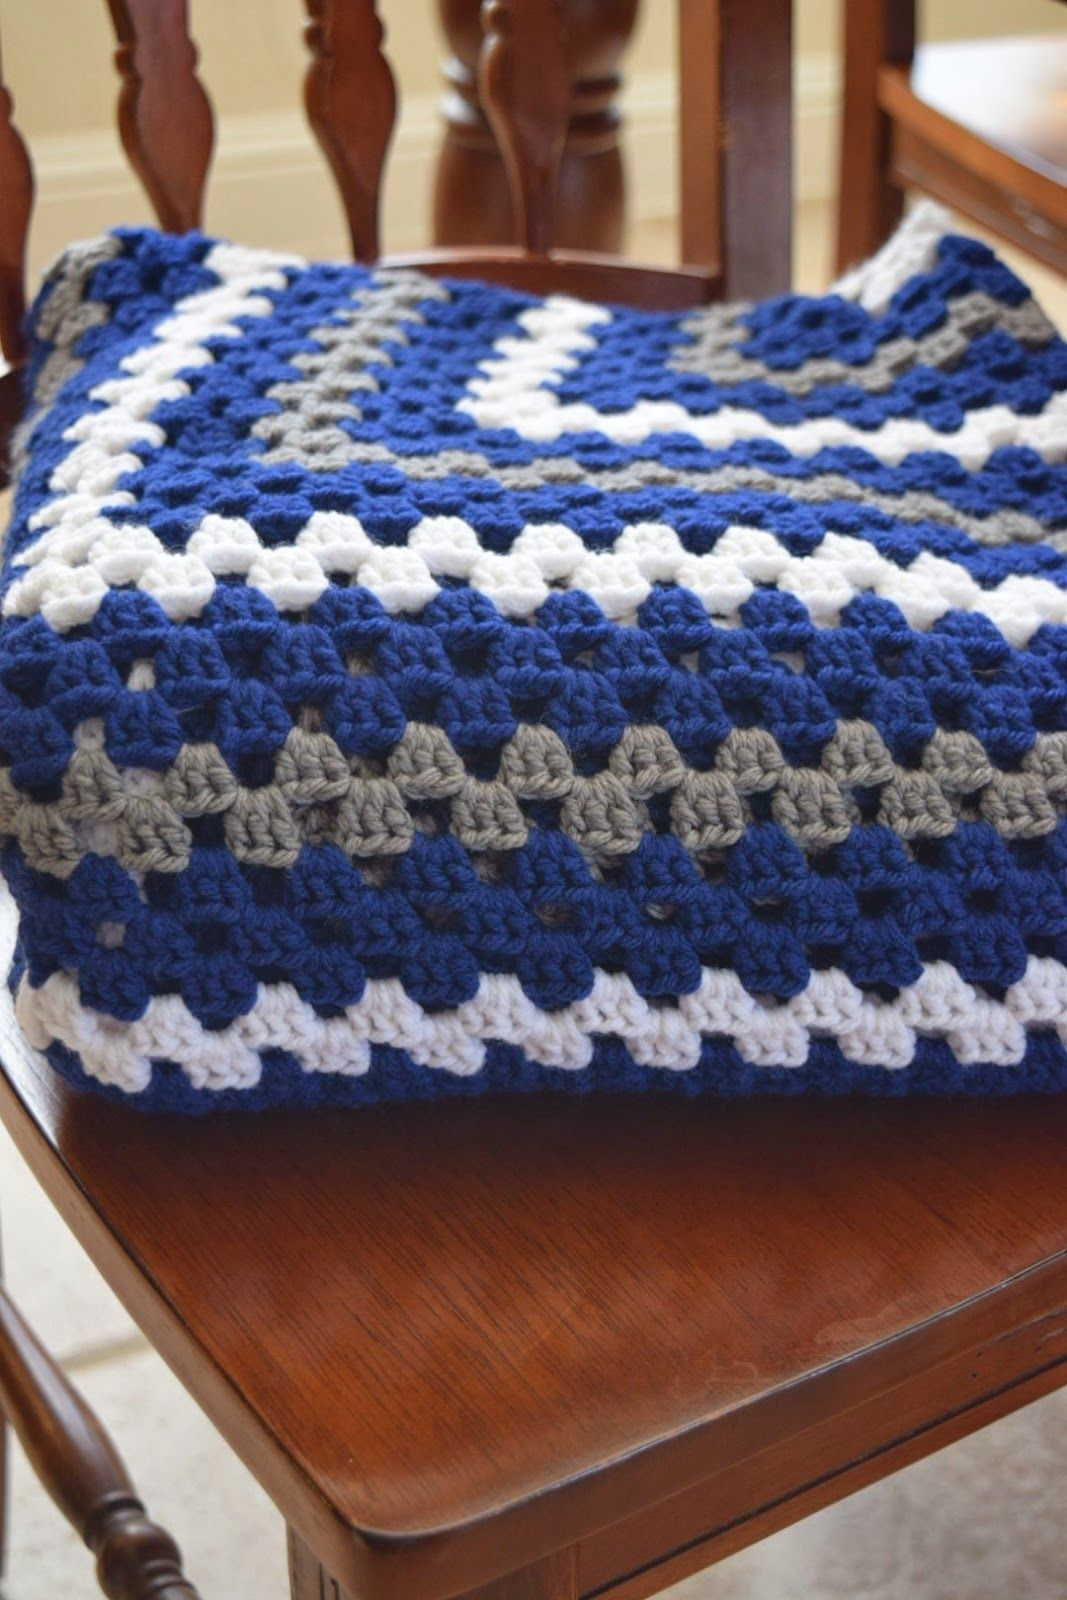 Crochet granny square lap blanket in dallas cowboys colors free crochet granny square lap blanket in dallas cowboys colors free pattern written out for beginners bankloansurffo Images